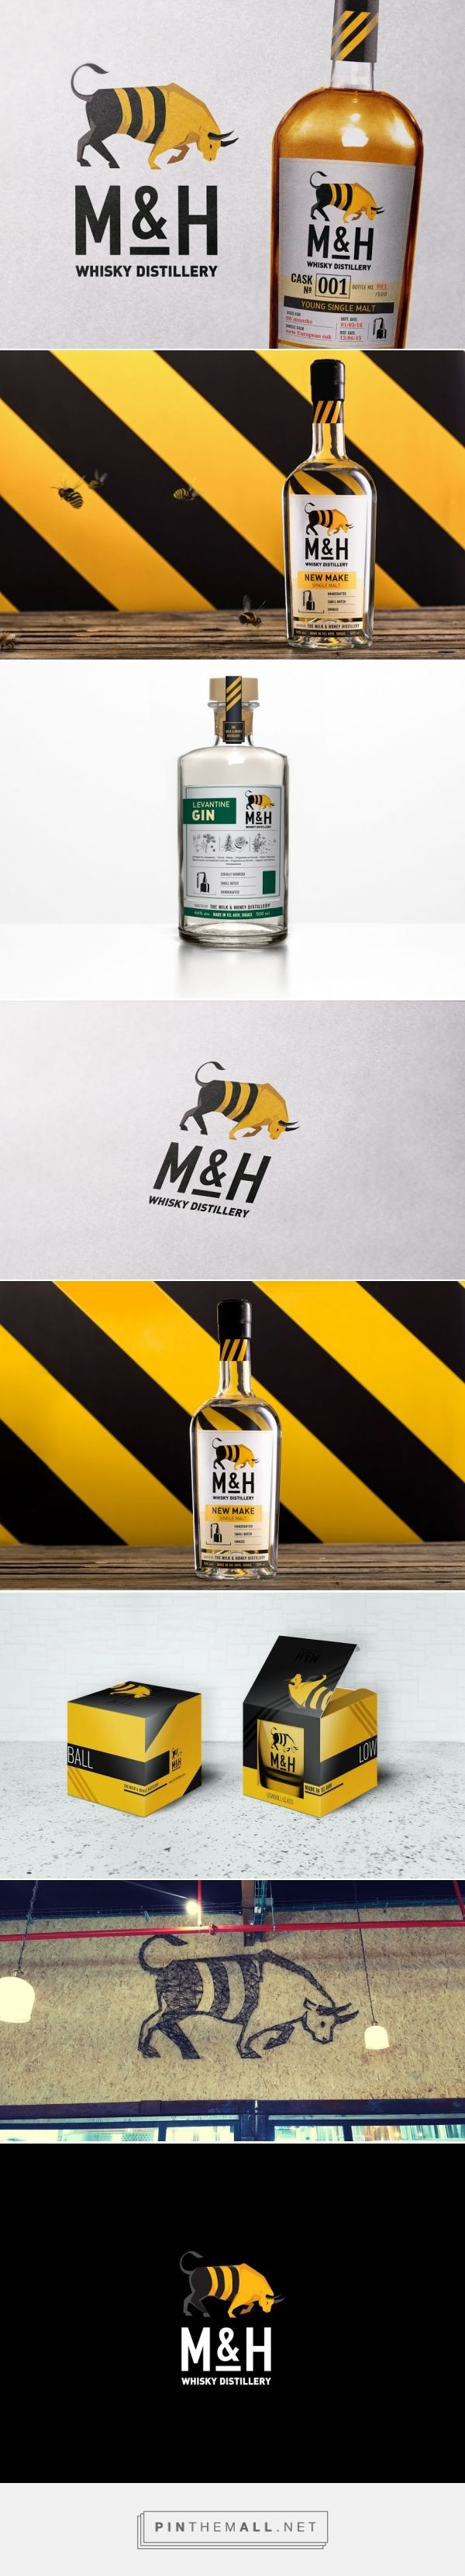 The Milk And Honey Distillery - Packaging of the World - Creative Package Design Gallery - http://www.packagingoftheworld.com/2016/06/the-milk-and-honey-distillery.html